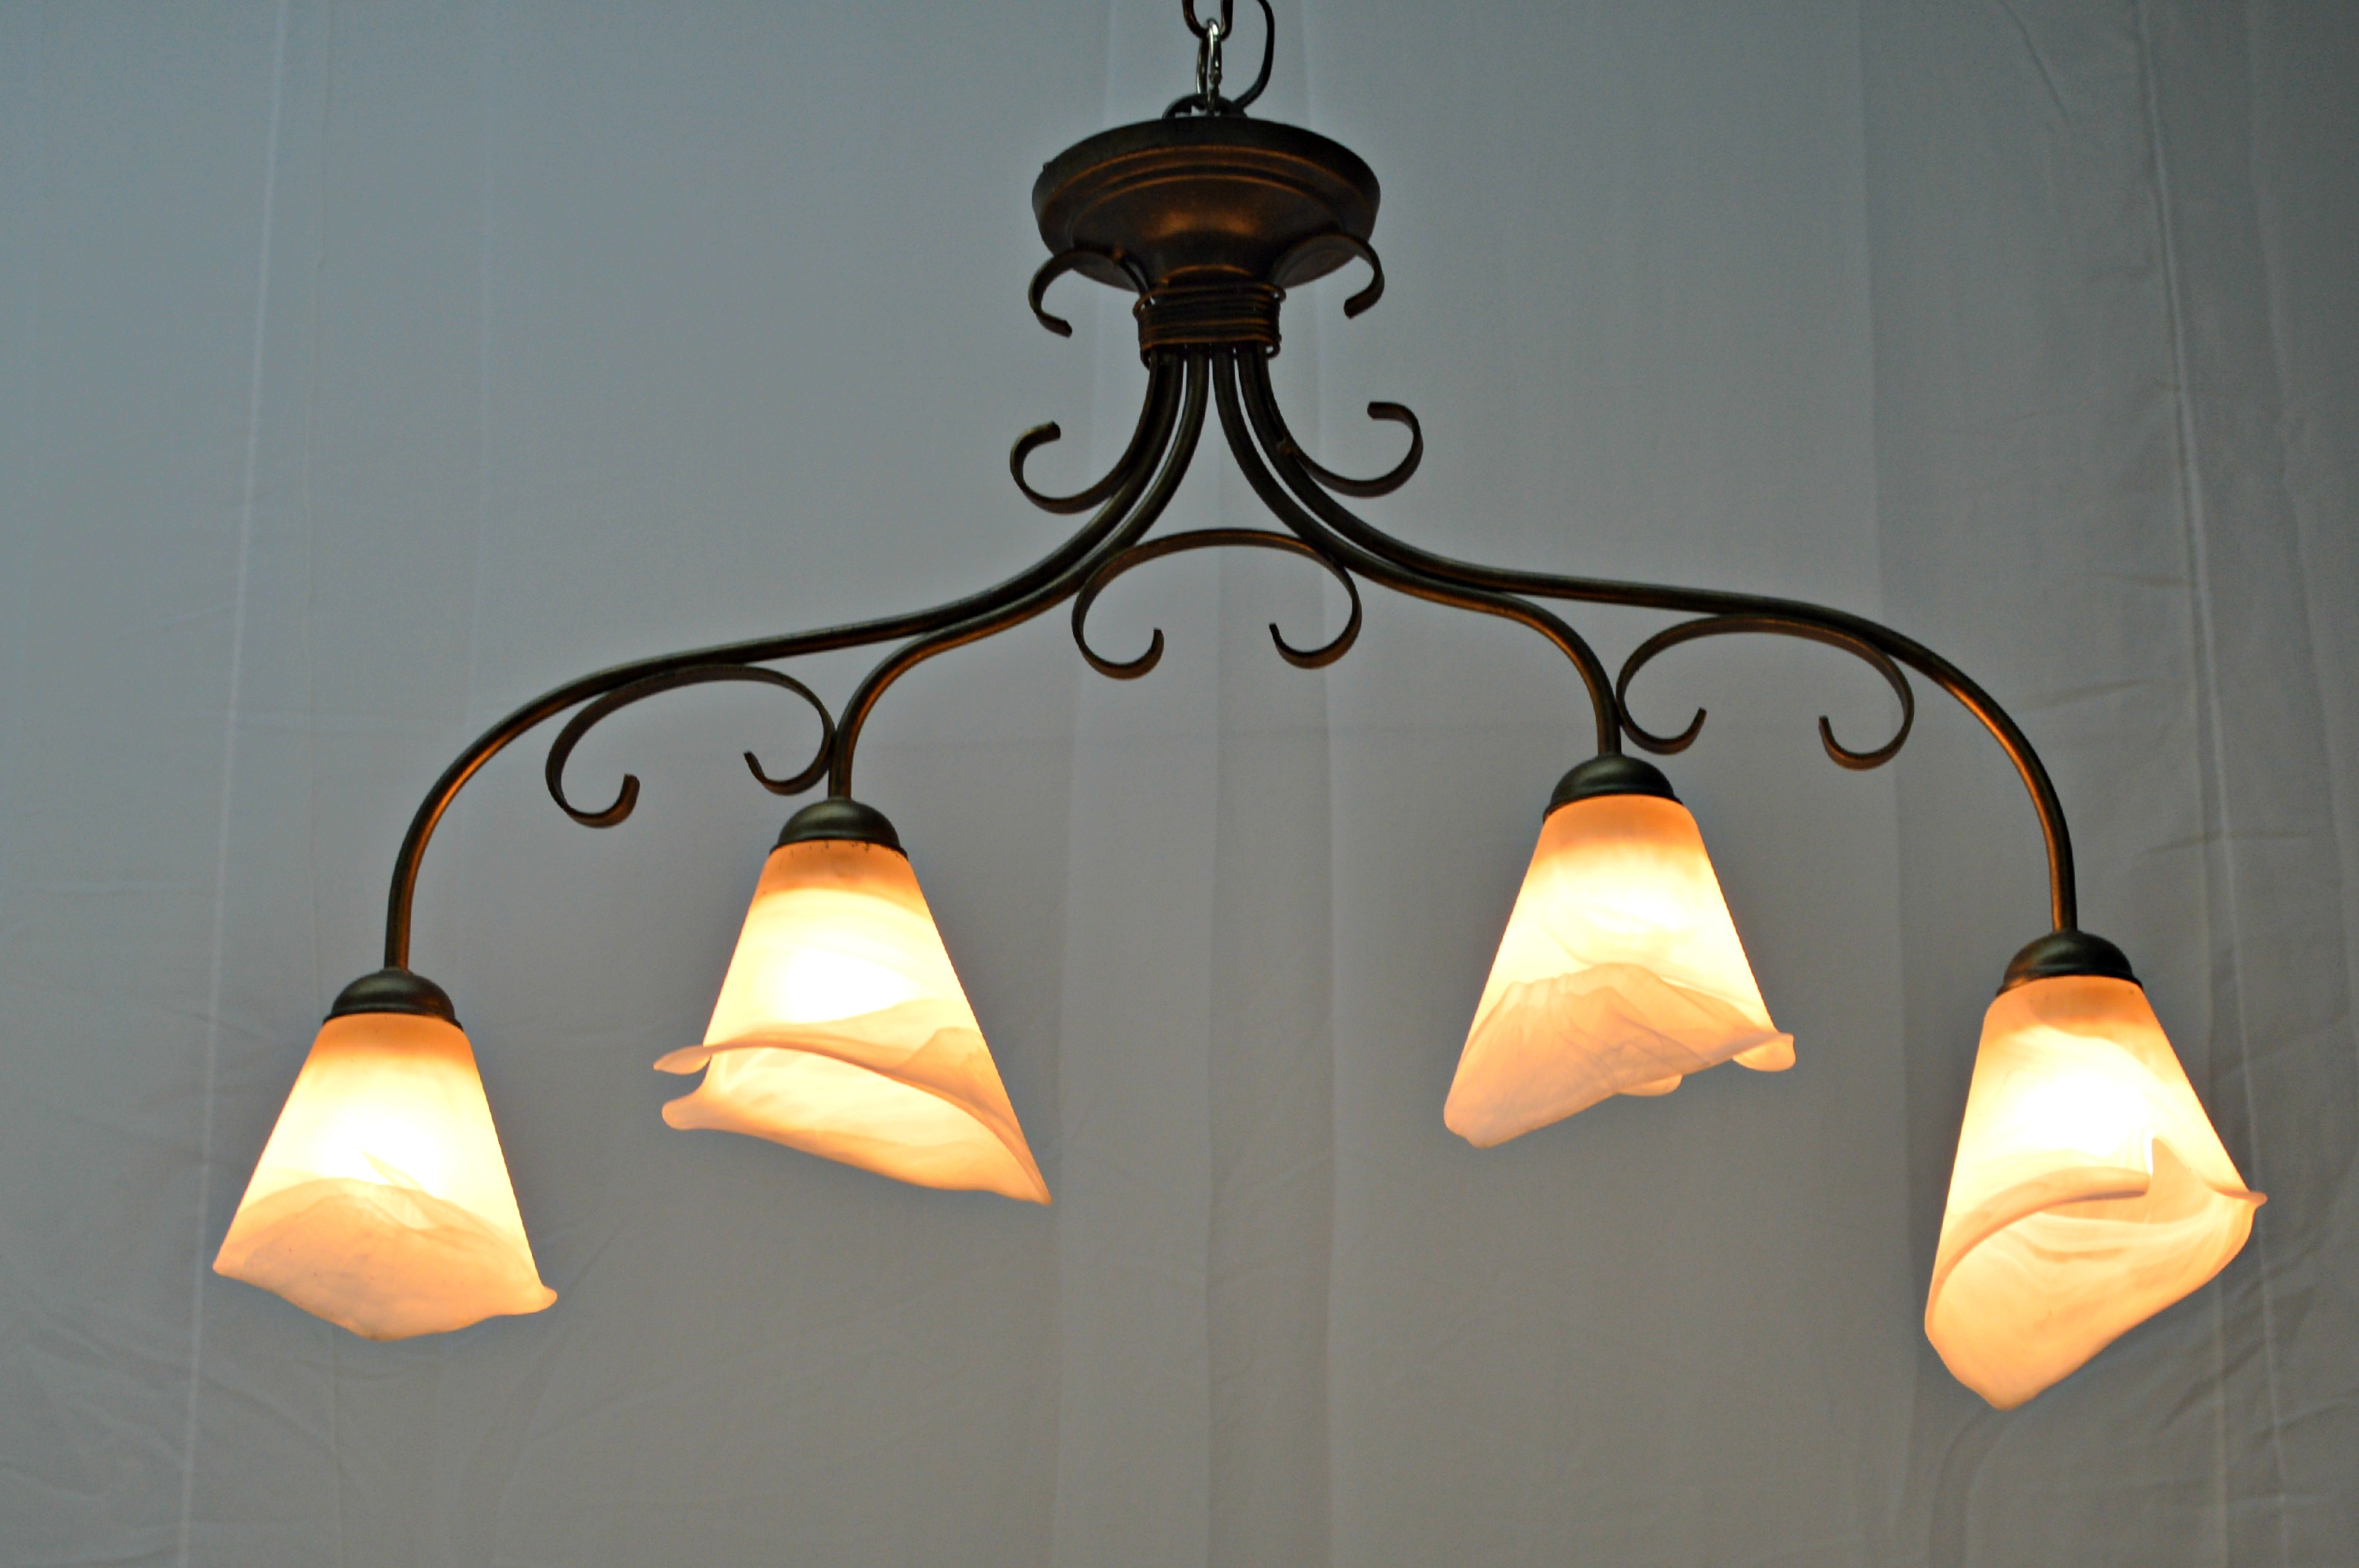 4 Light Calla Lily Chandelier For Sale In Miami Image 6 Of 8